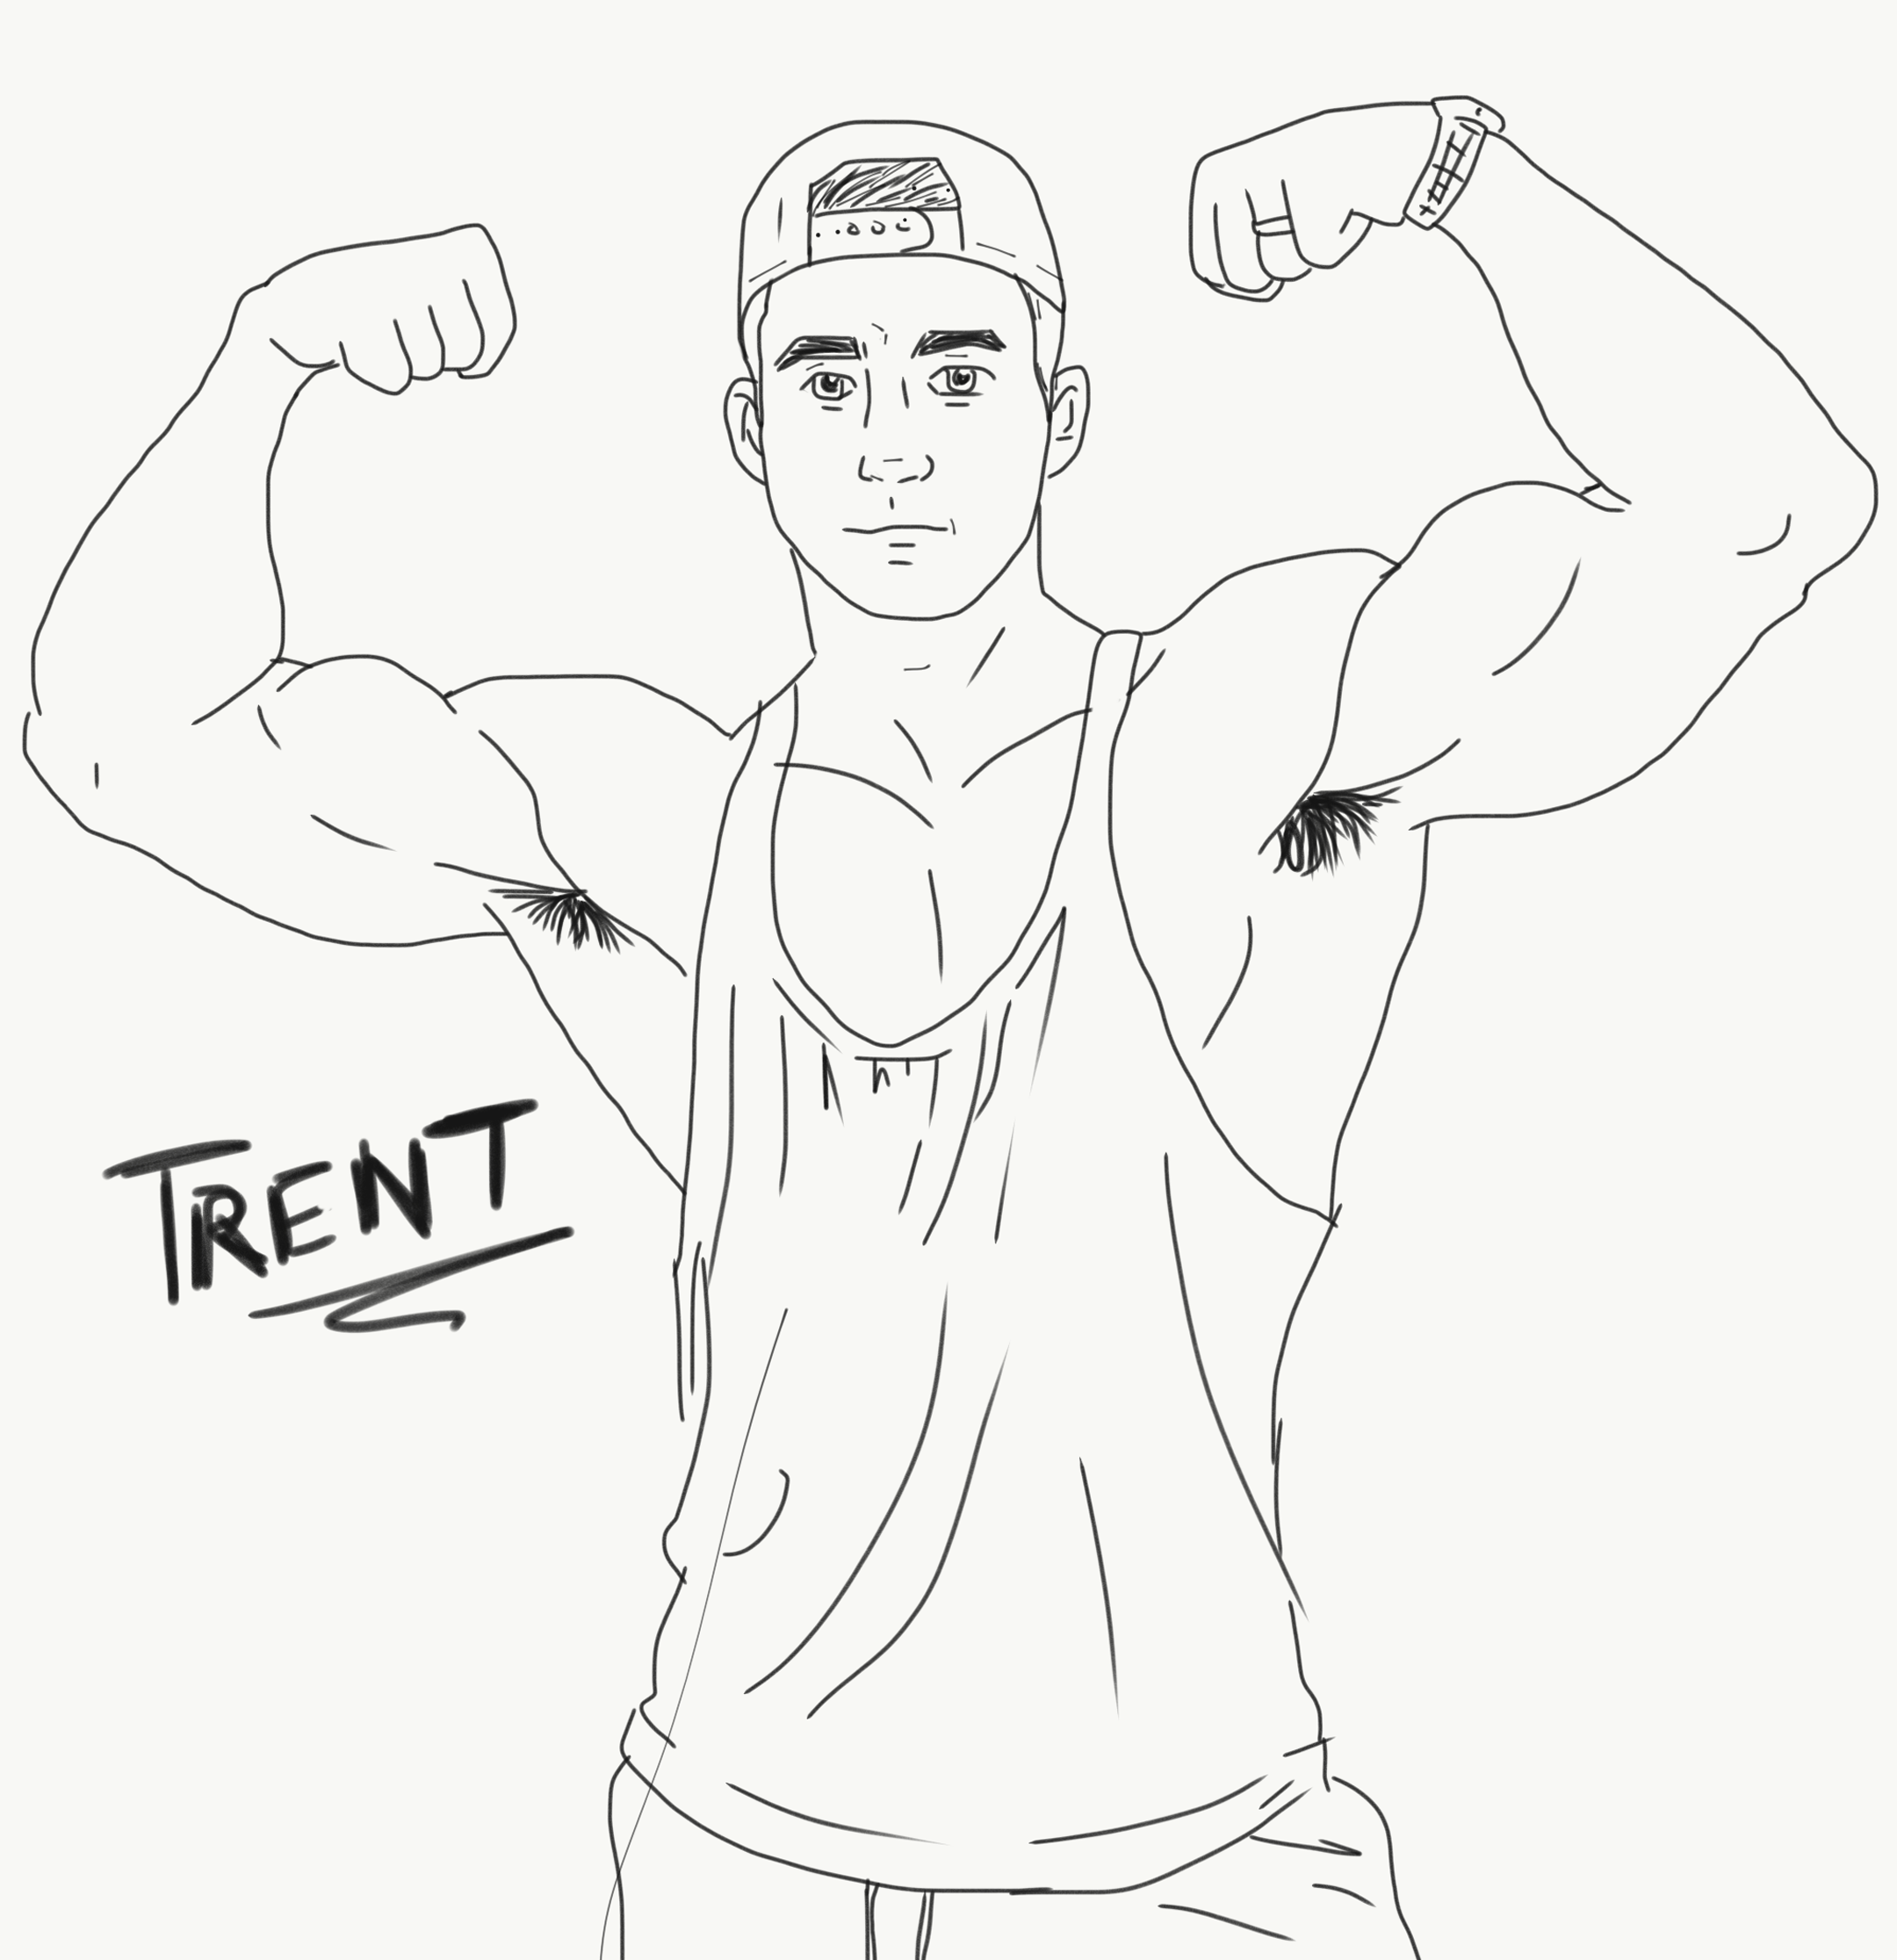 Trent. Image by thenewtfartist